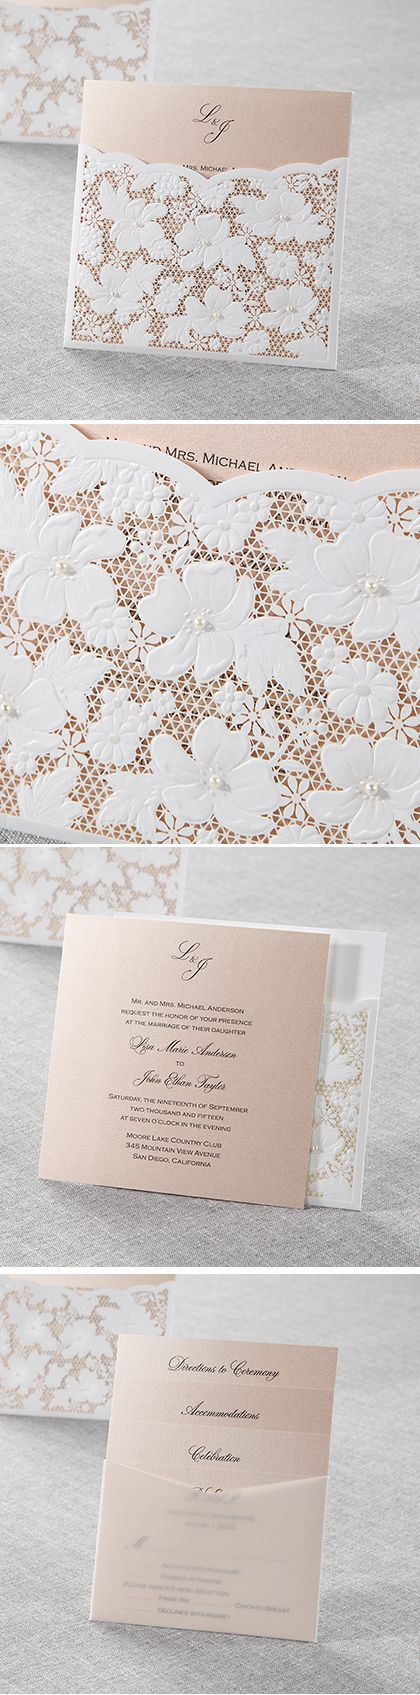 Traditional Elegant Wedding Invitations – guitarreviews.co